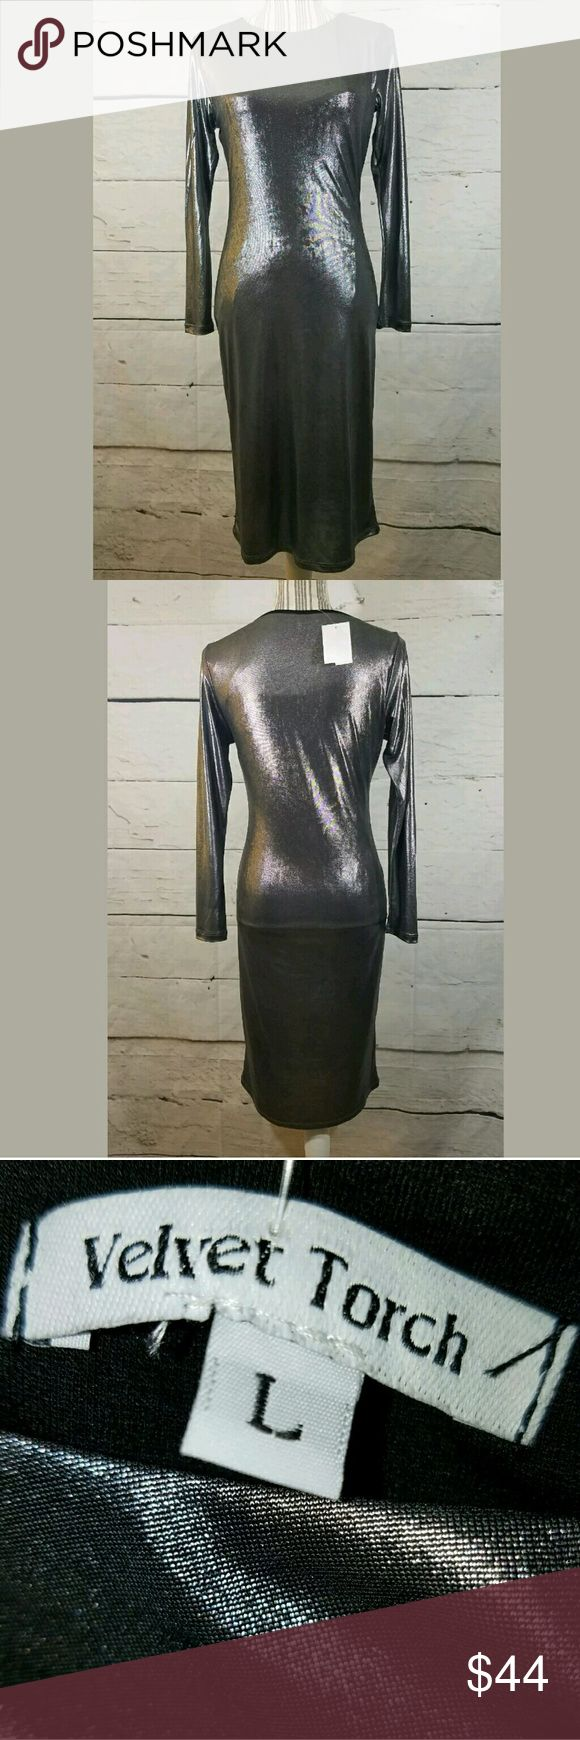 Velvet Torch Dress Women's Large Metallic Silver Velvet Torch Dress Women's Large Metallic Silver Bodycon Stretch Party NWT..Gorgeous dress. Fully lined.  17 inches pit to pit.  28 inch waist.  Hips stretch up to 50 inches.  41.5 inches long.    LB Velvet Torch Dresses